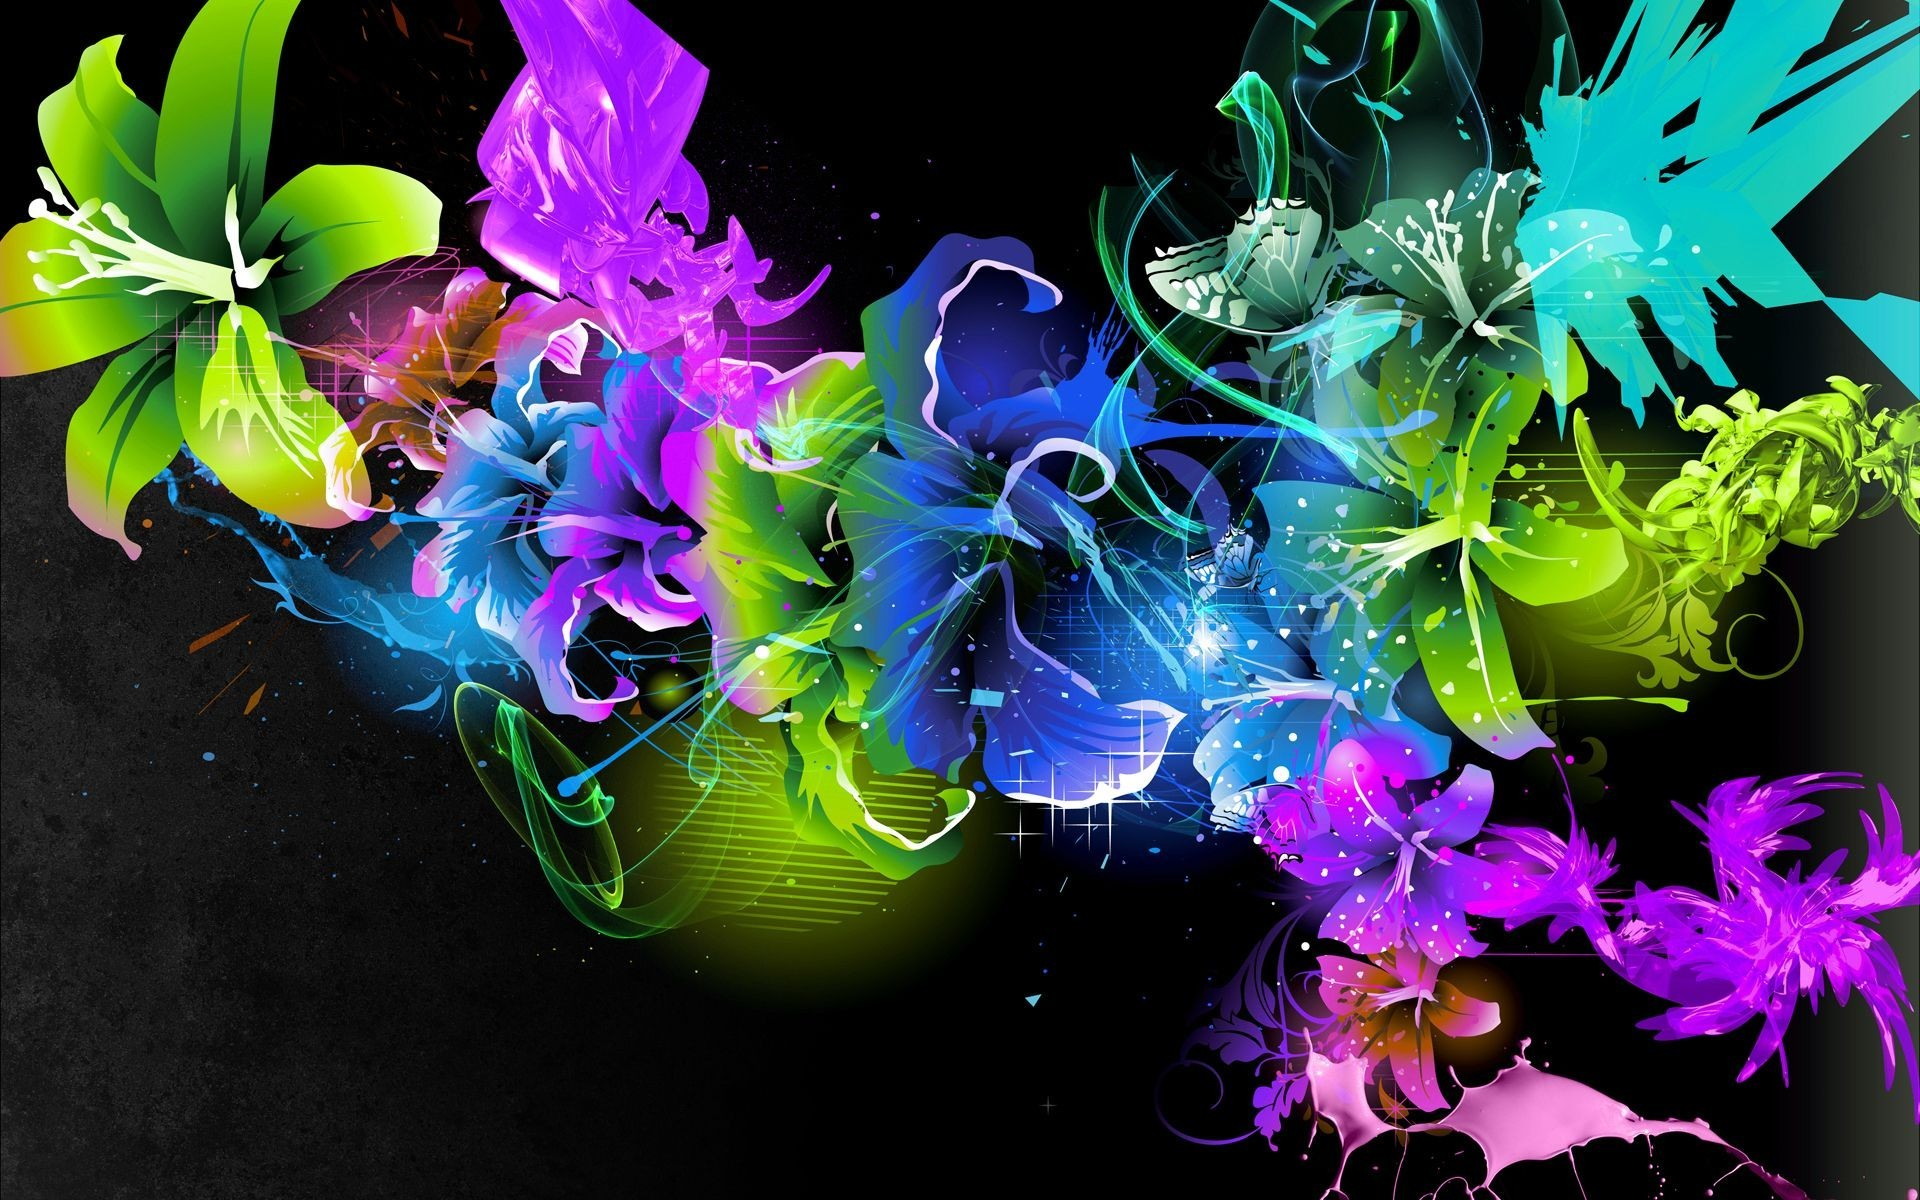 Color Abstract Wallpaper Free For Desktop